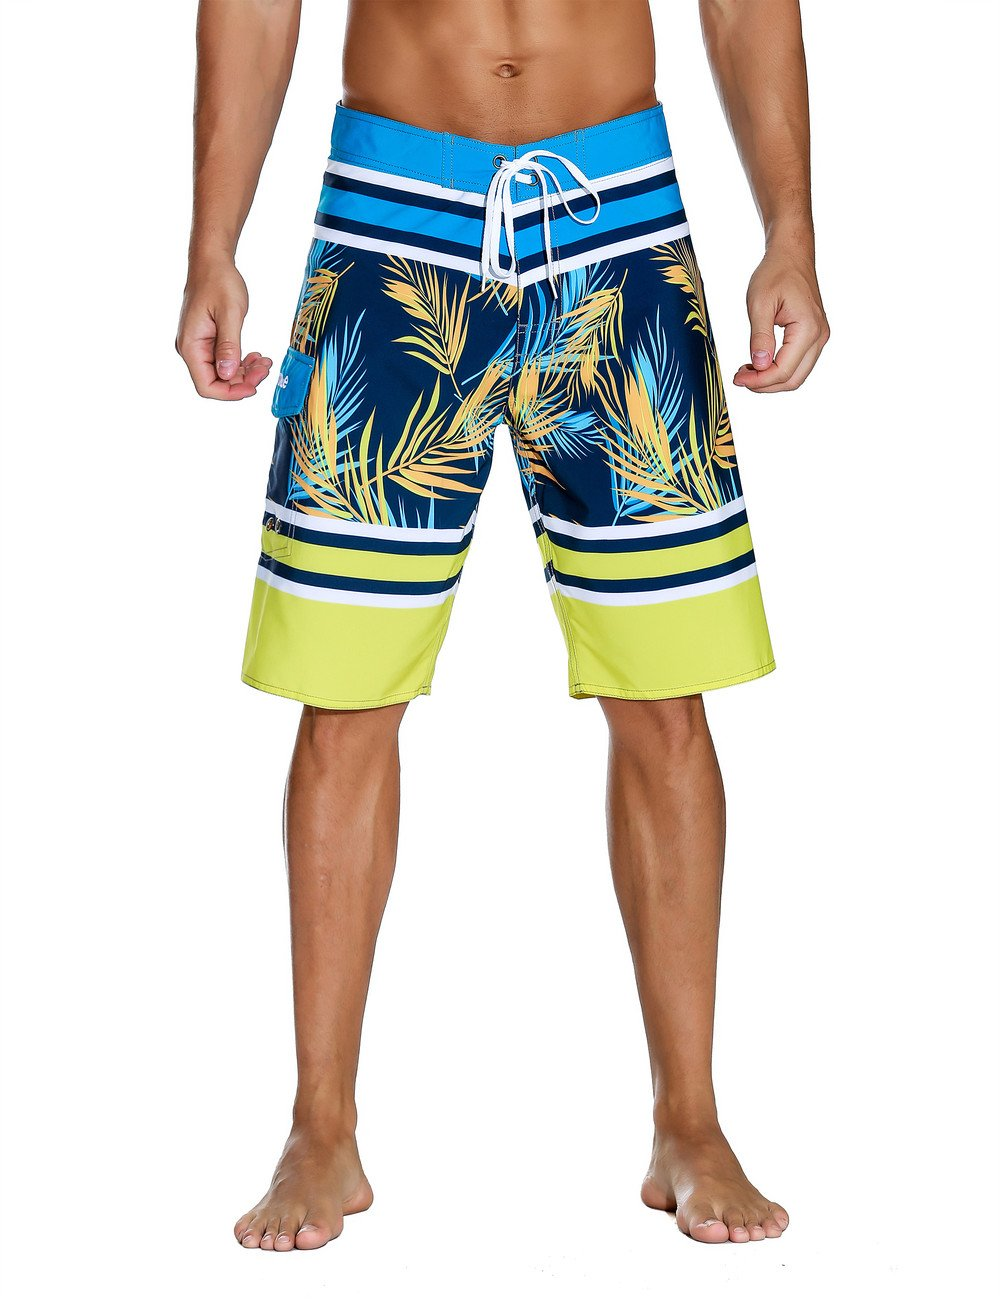 Nonwe Men's Swimwear Grid Printed Quick Dry Swim Shorts with Lining Yellow 38